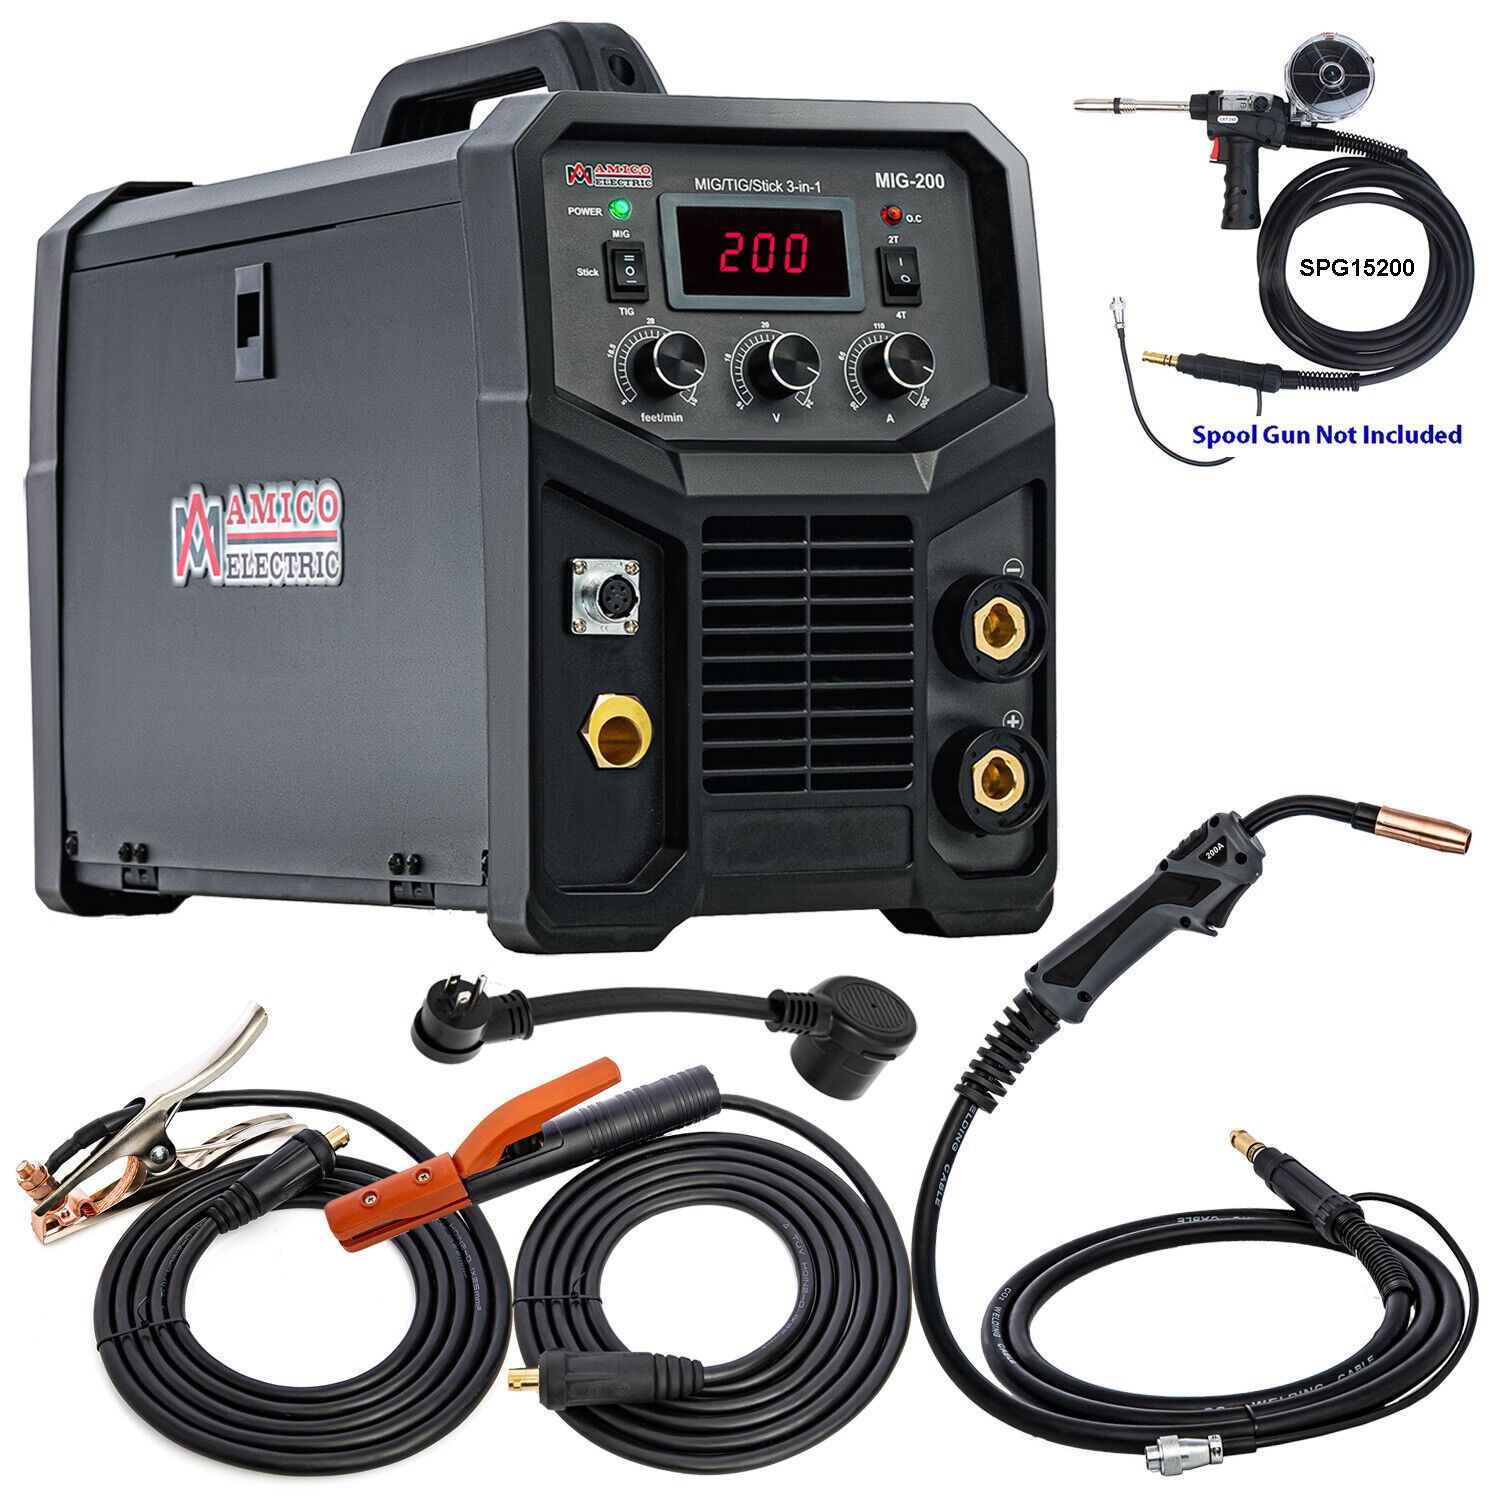 Amico MIG-200, Professional 200-Amp MIG/Flux Cored/Stick/TIG DC Inverter Welder . Available Now for 579.00